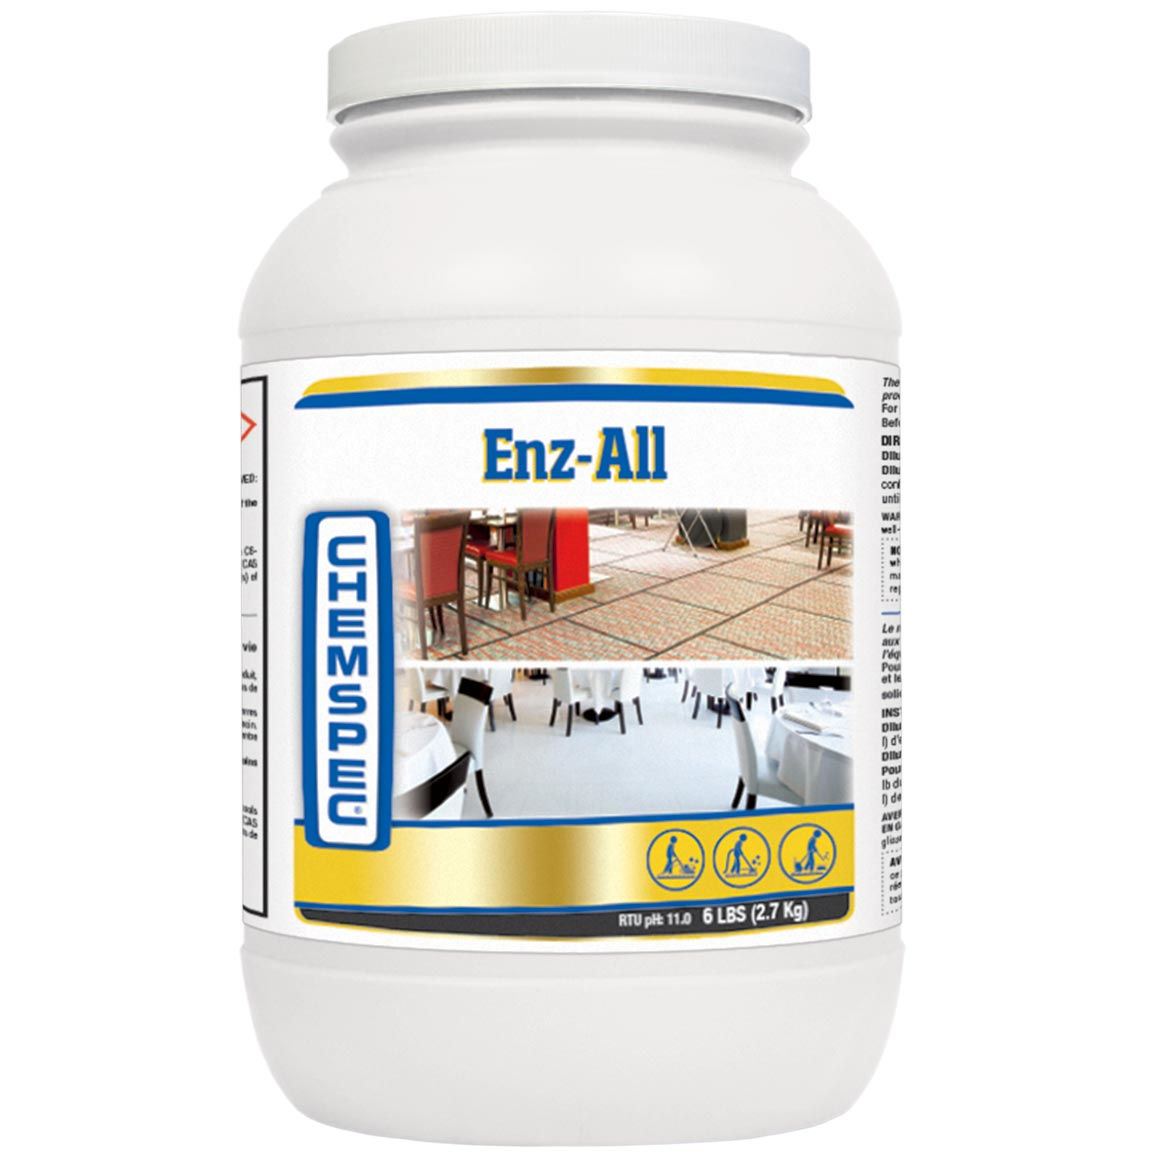 Chemspec C-EA24 Enz-All Powder Clean 24 lbs /Case 4/6 lbs Jars Enzall (Discount Shipping)